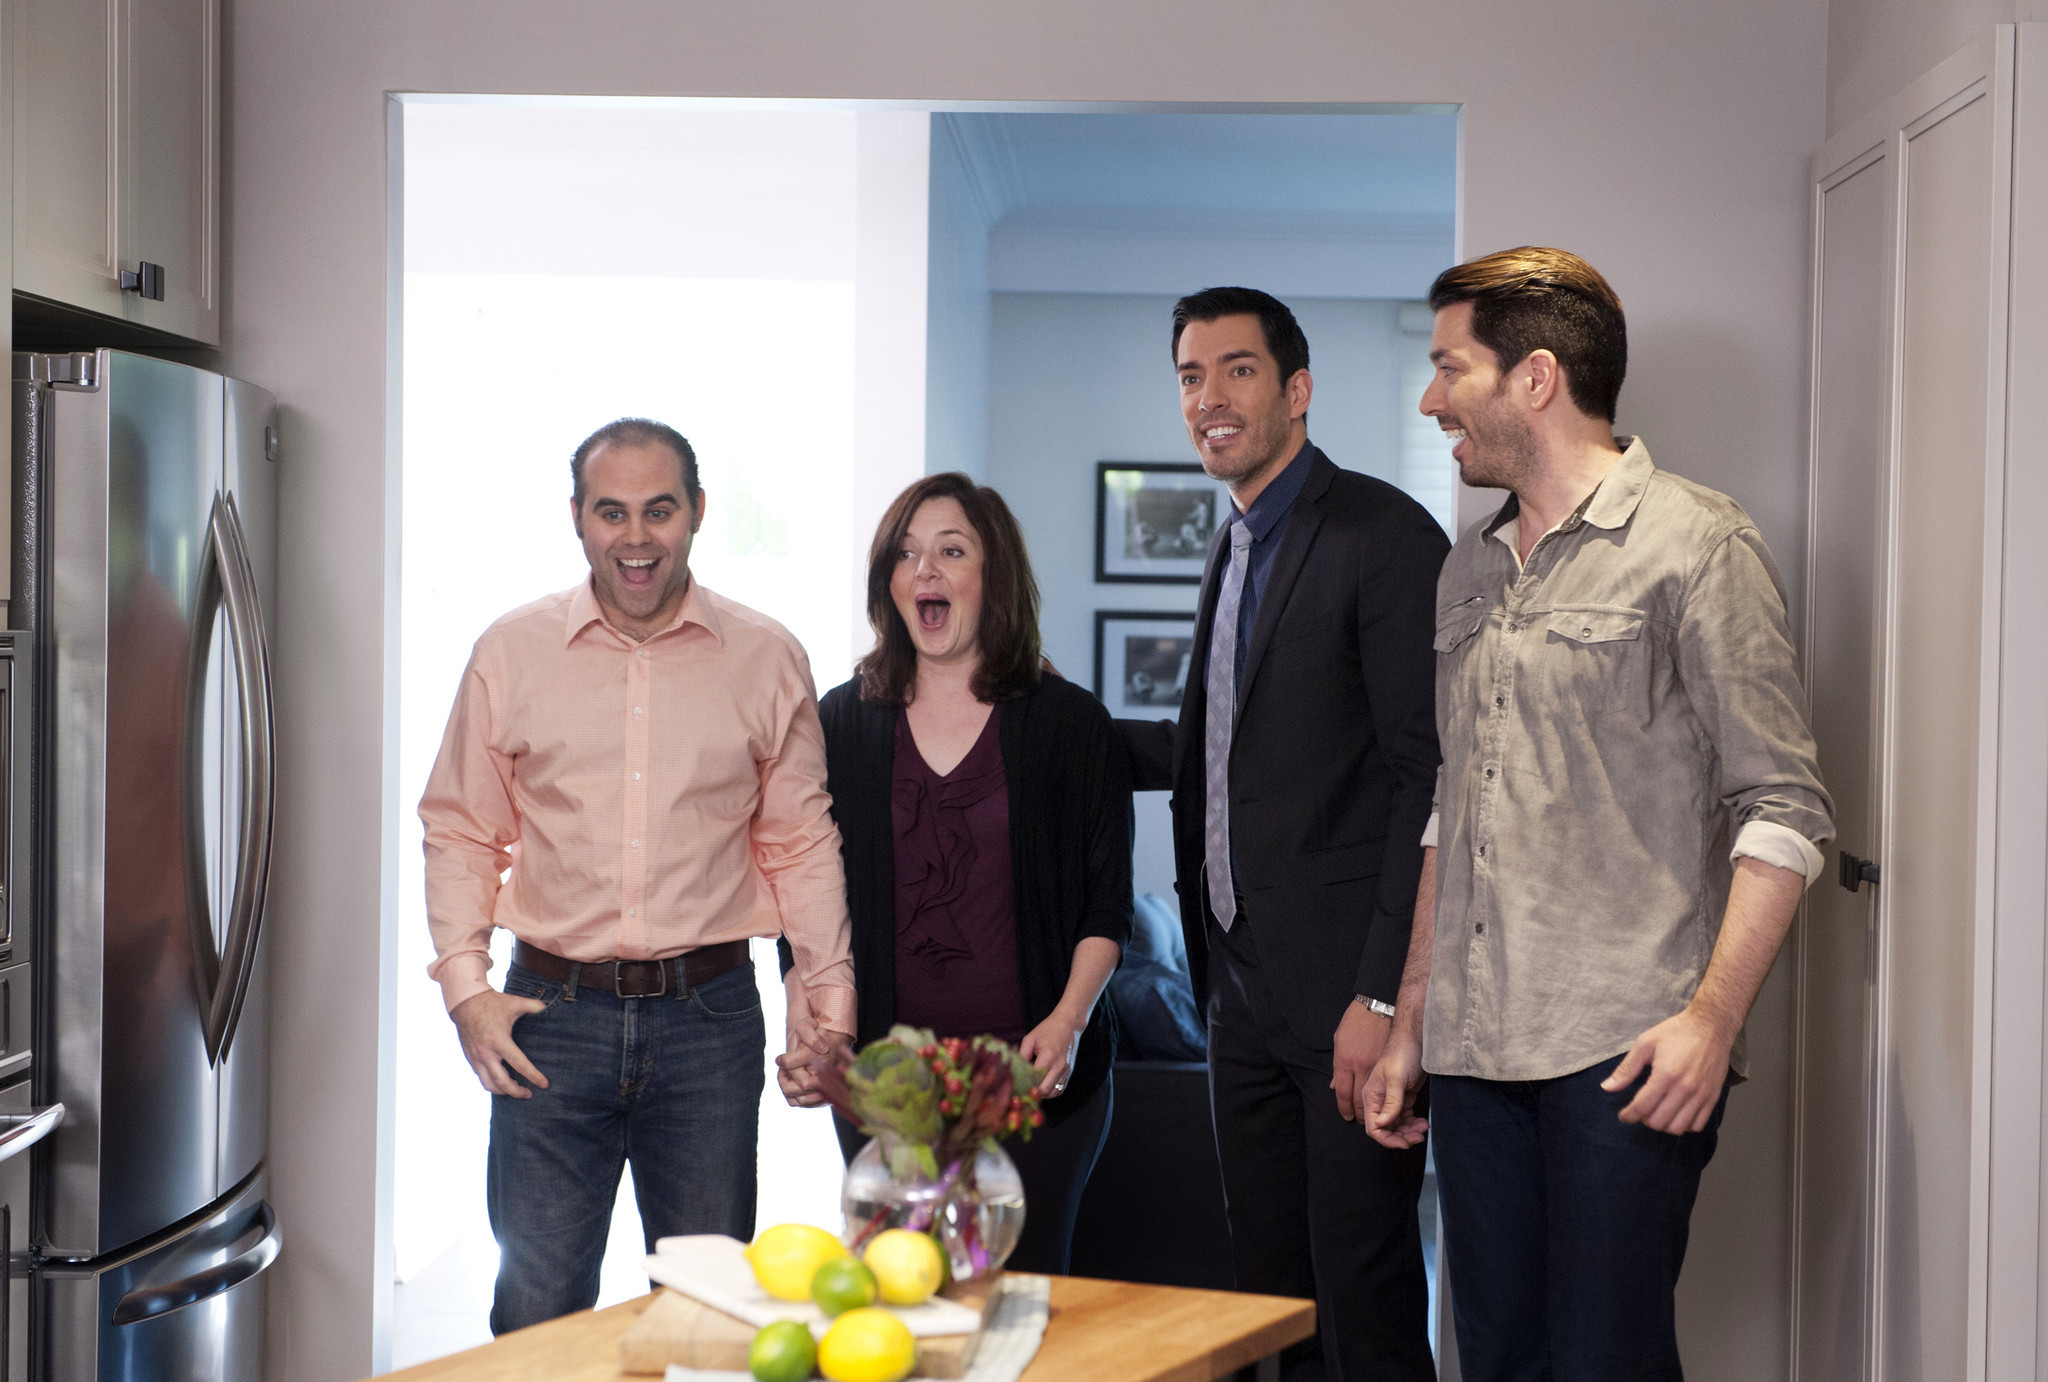 Upfronts 2015: HGTV Just Keeps On Building With 10 New